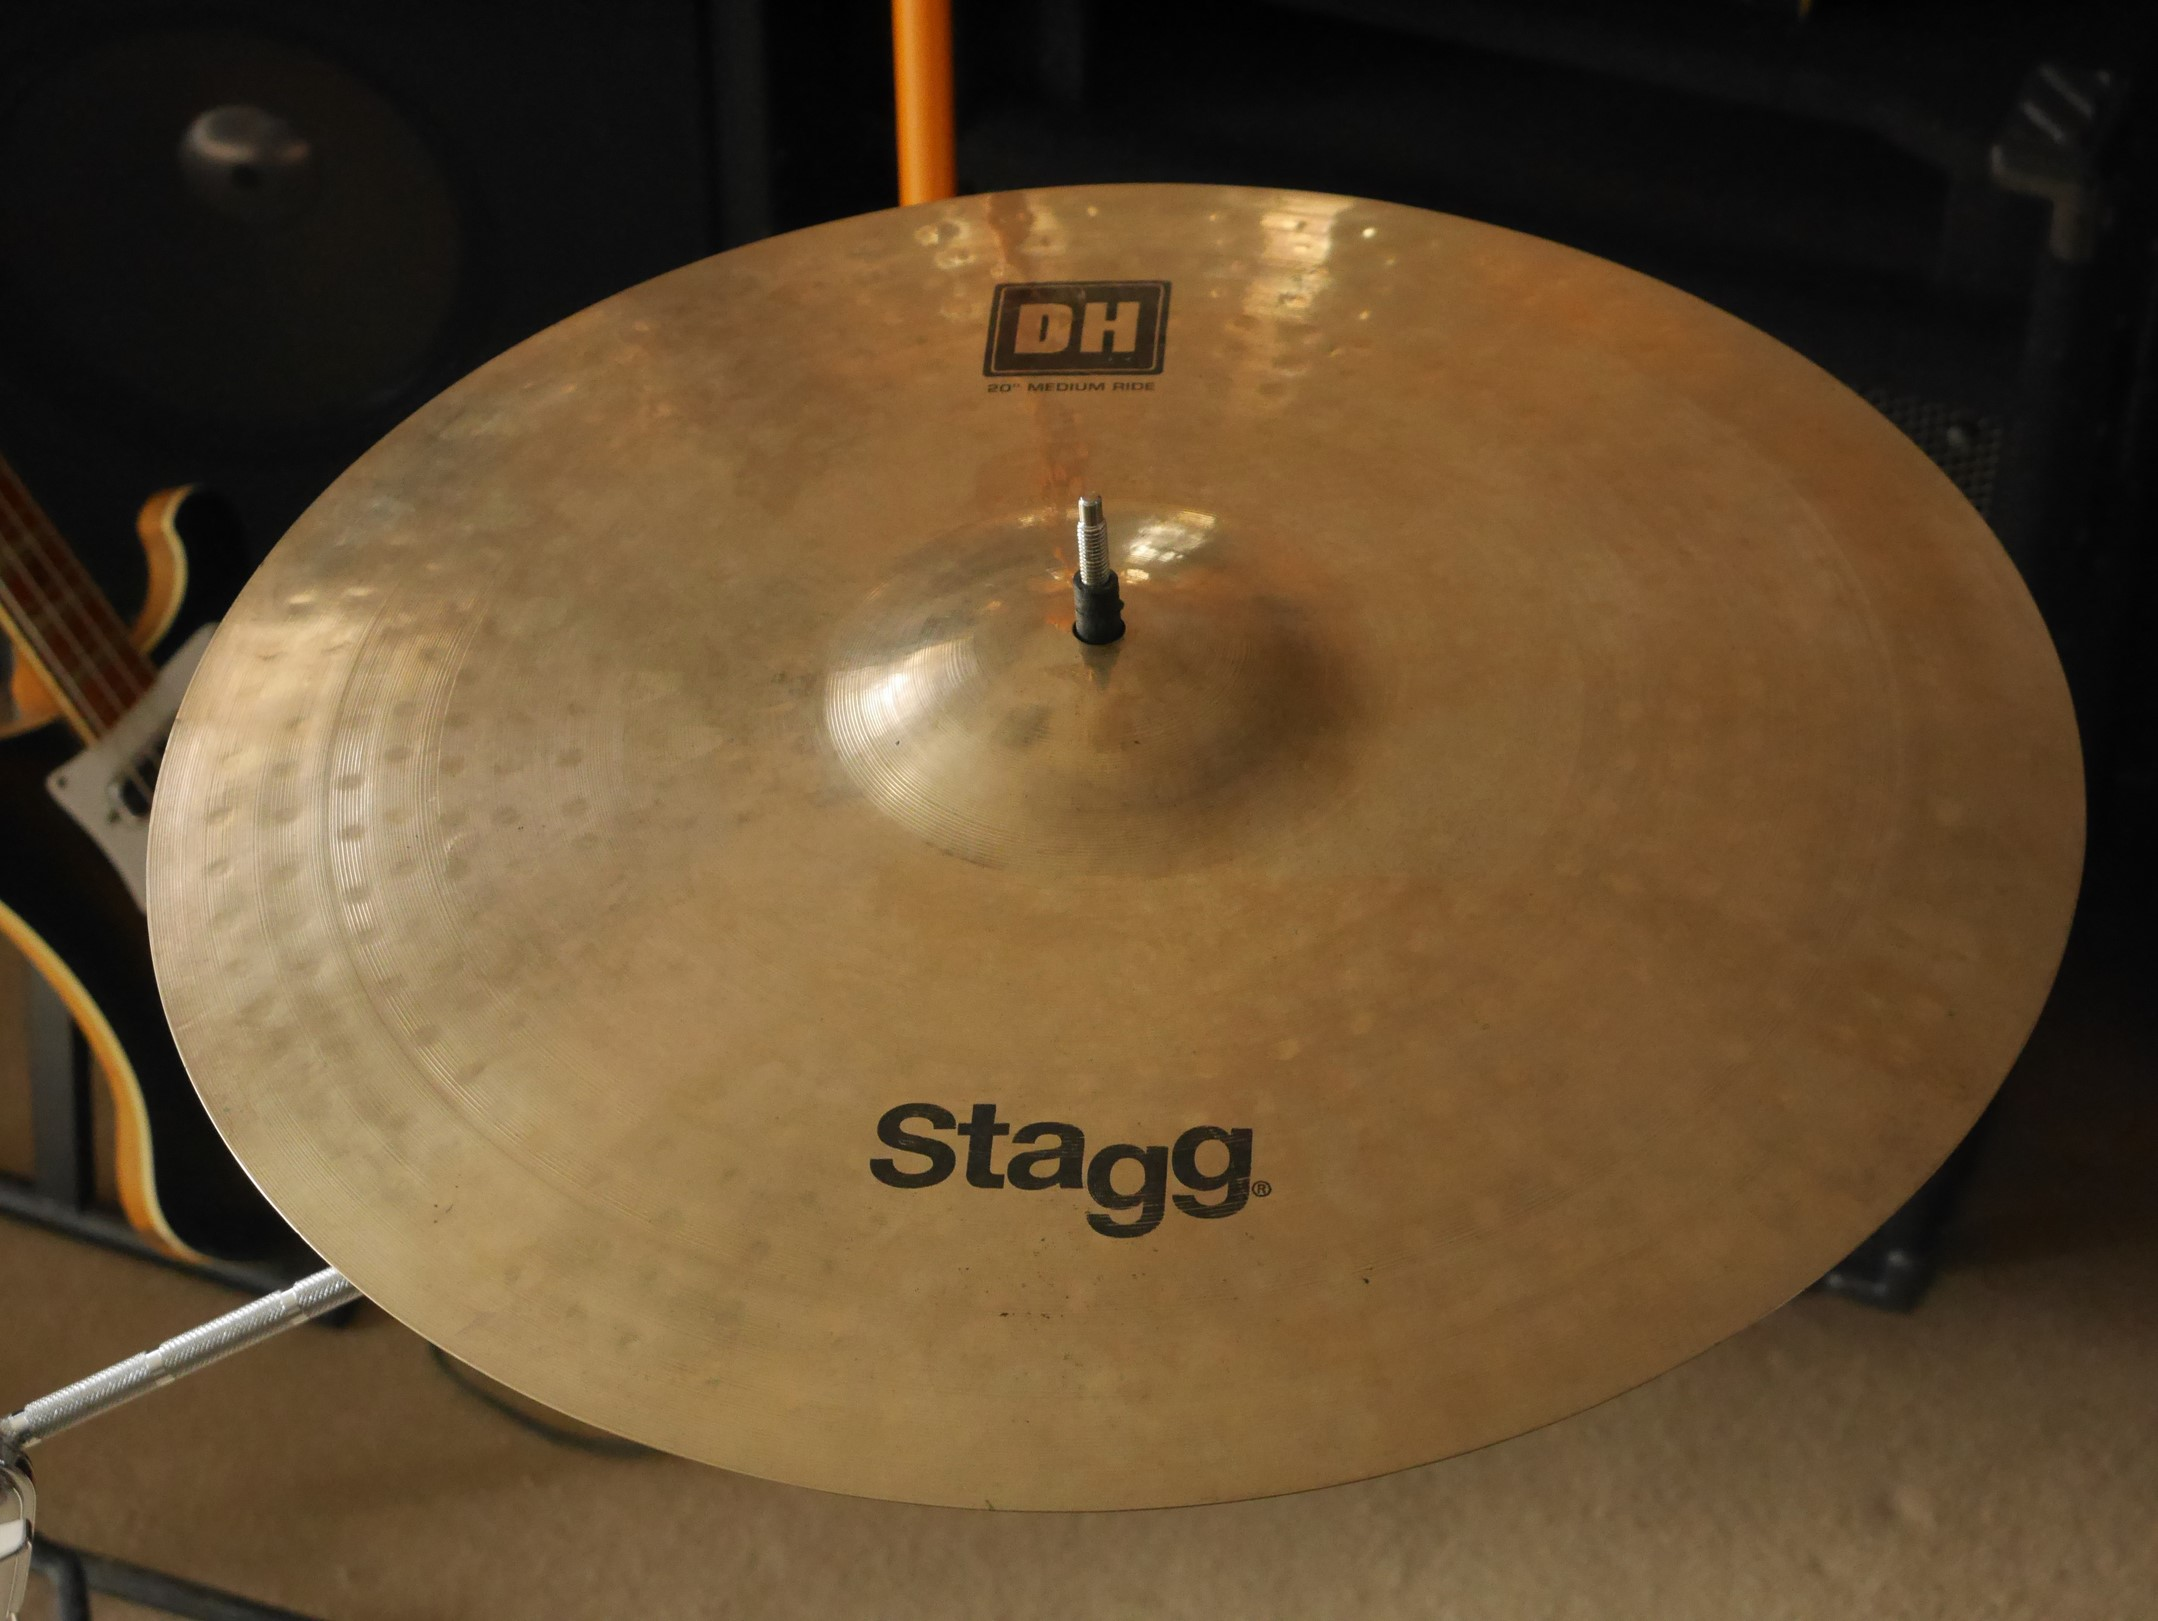 studiolaboiteameuh-cymbale-stagg-dh-medium-ride-20